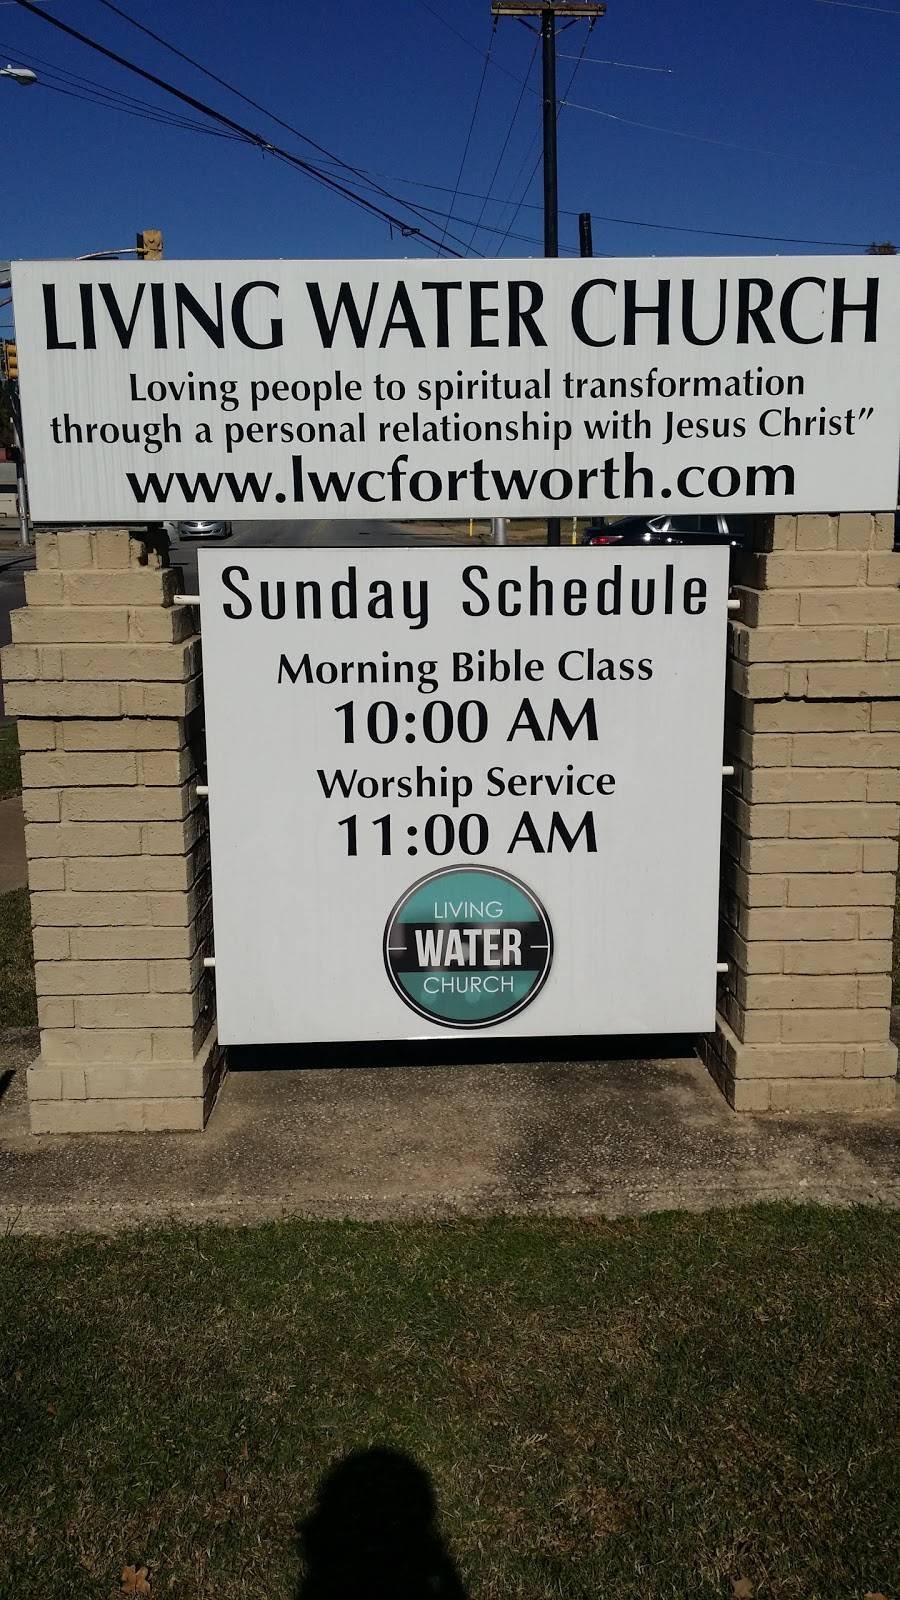 Living Water Church - church  | Photo 5 of 5 | Address: 109 S Roberts Cut Off Rd, Fort Worth, TX 76114, USA | Phone: (817) 738-9917